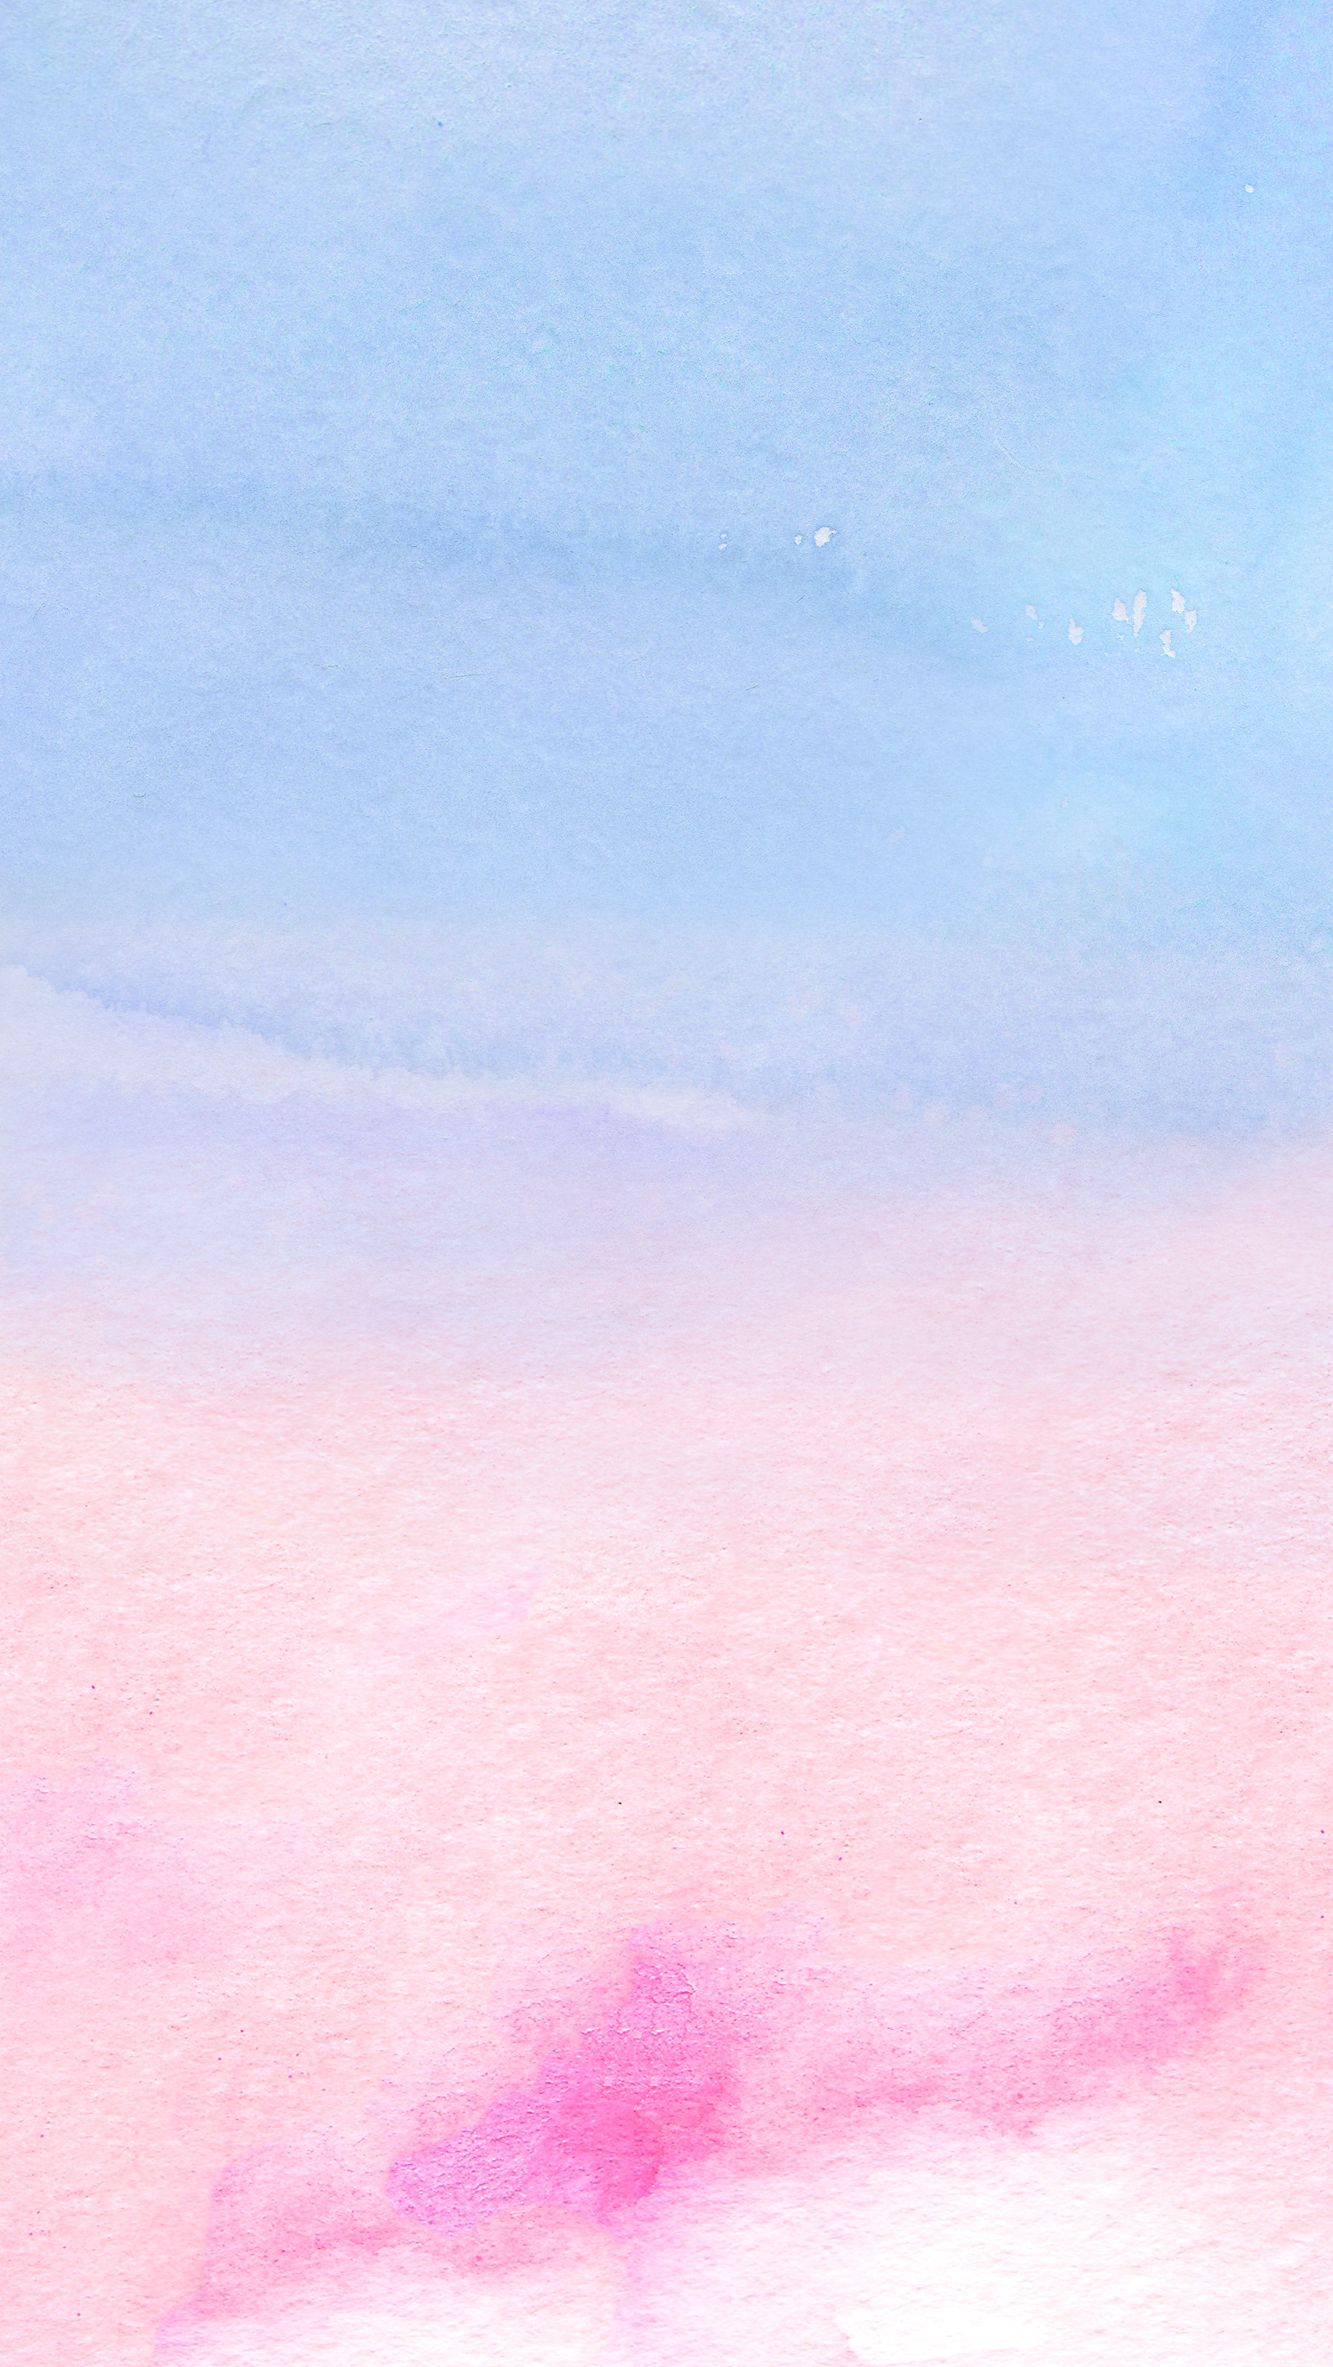 Blue And Pink Watercolor Background Blue Watercolor Wallpaper